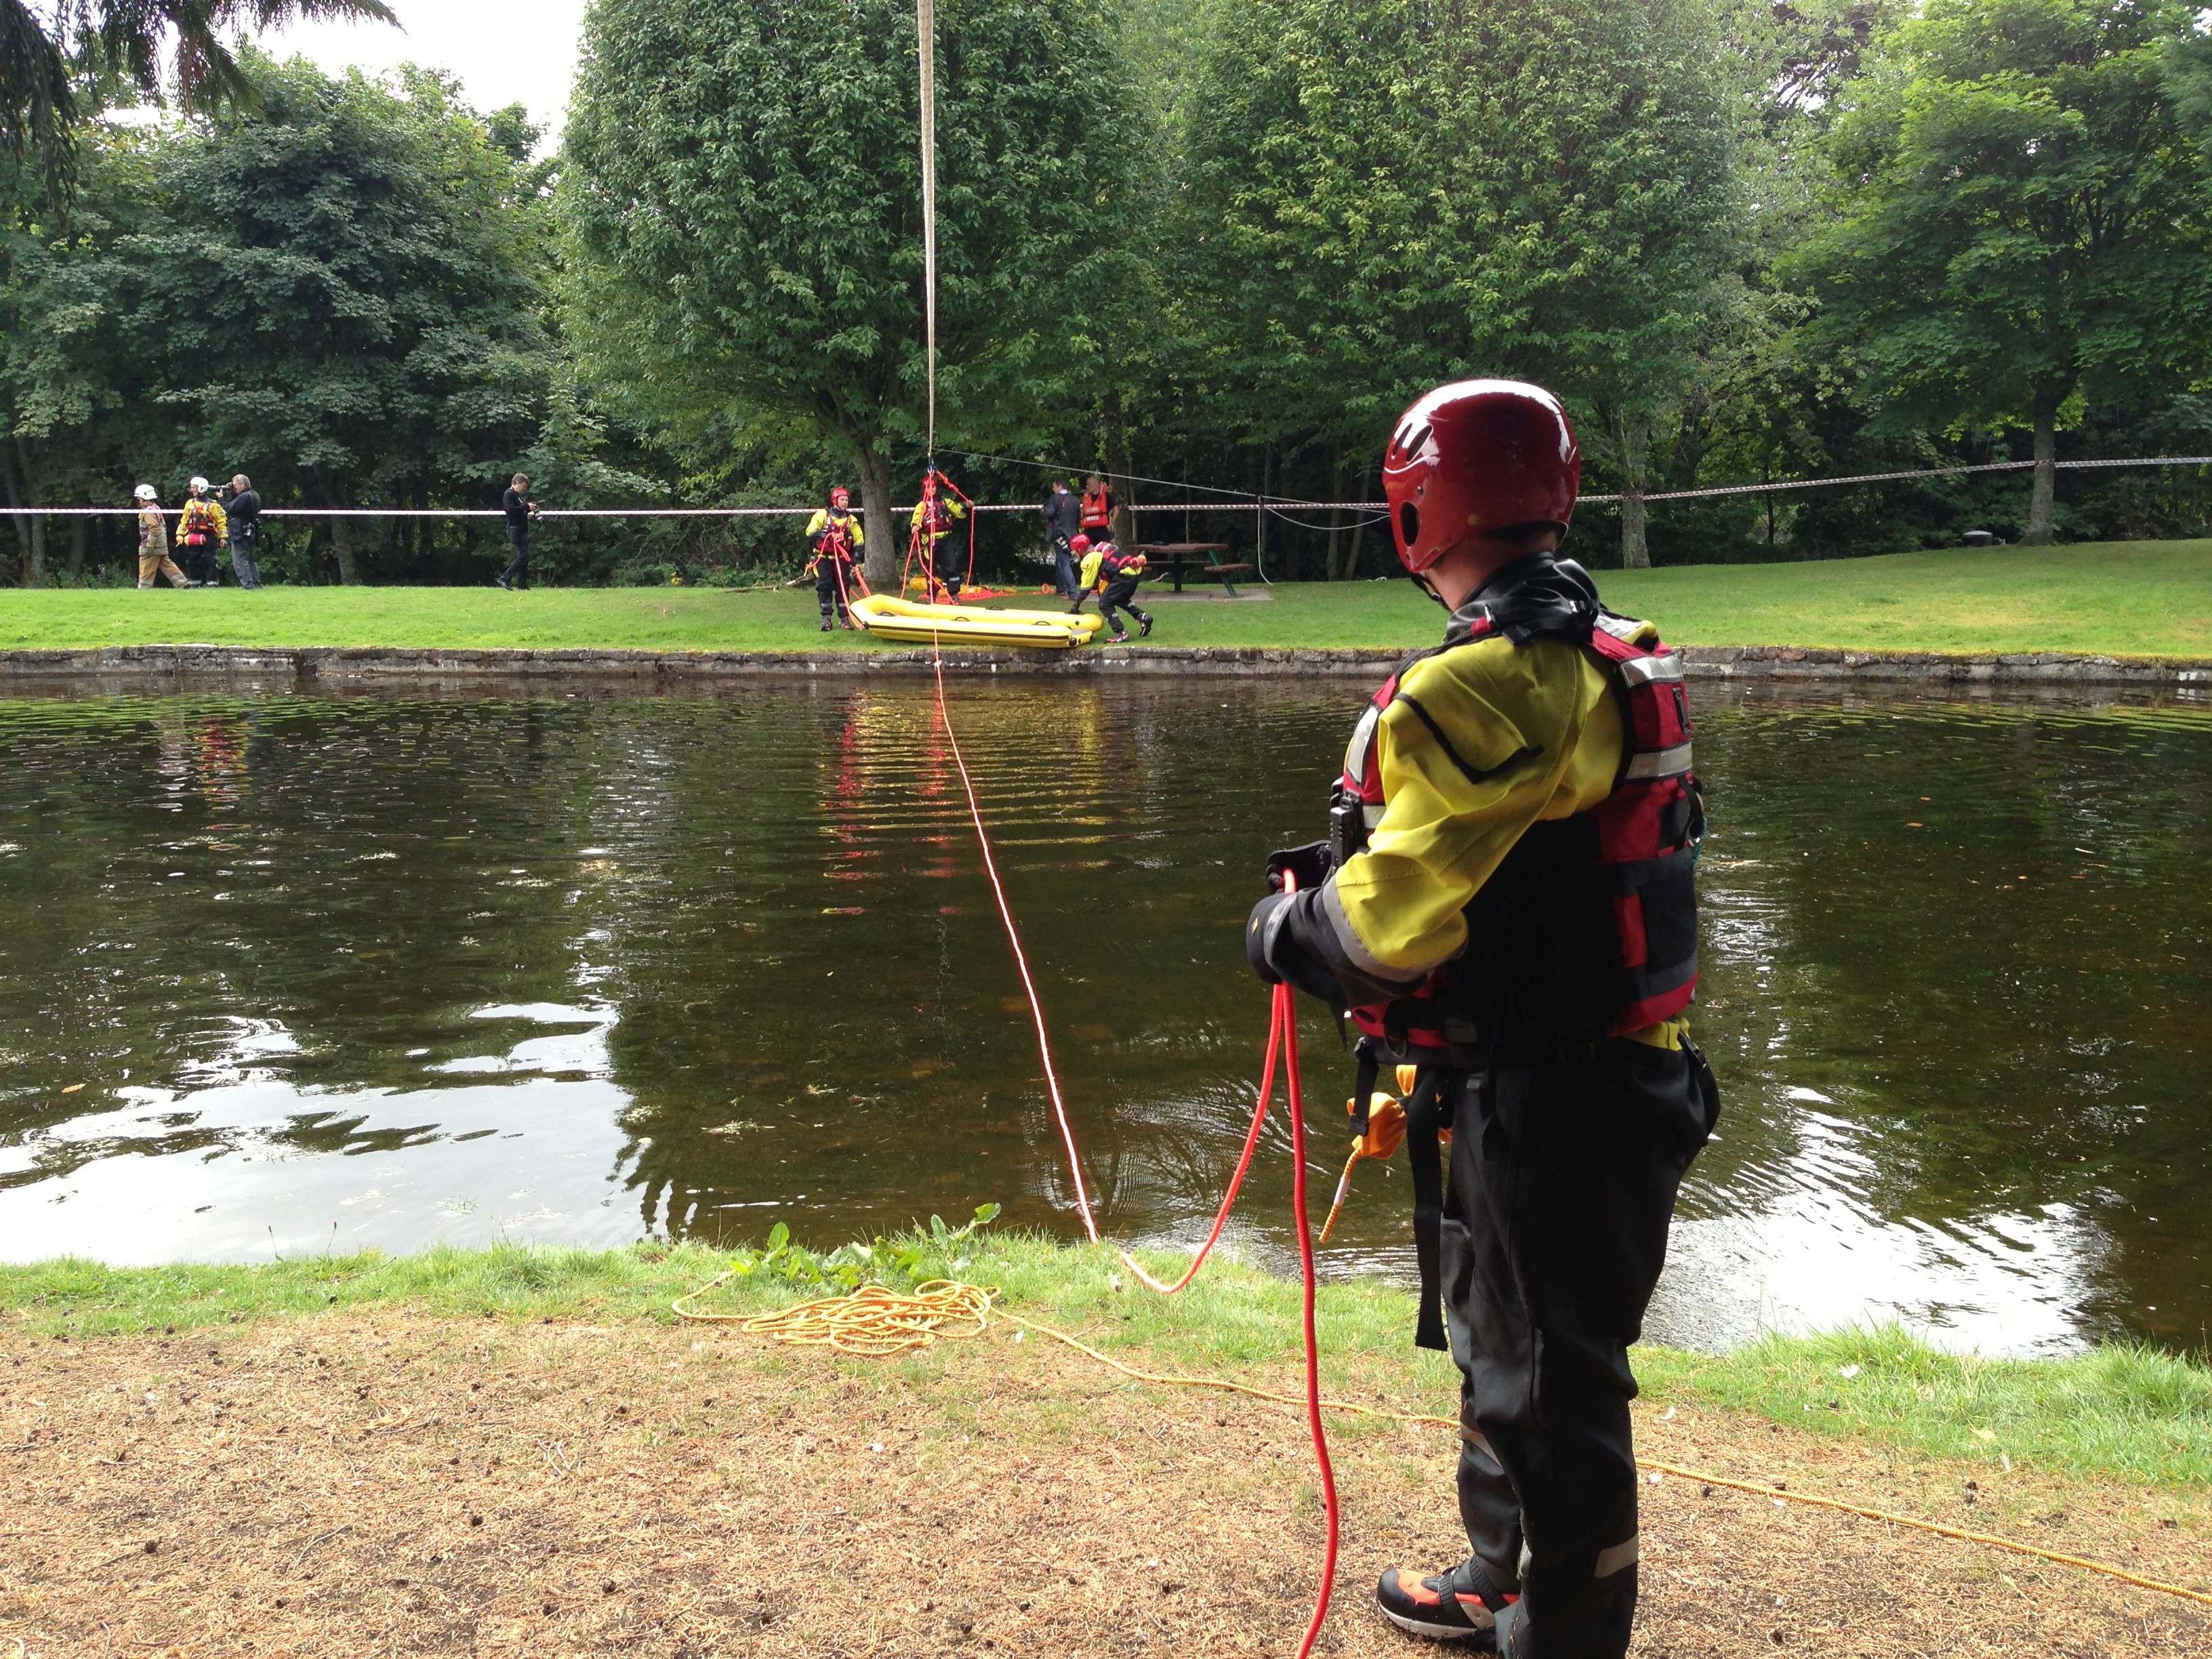 SFRS lead operation to rescue man after cliff fall at Blair Atholl